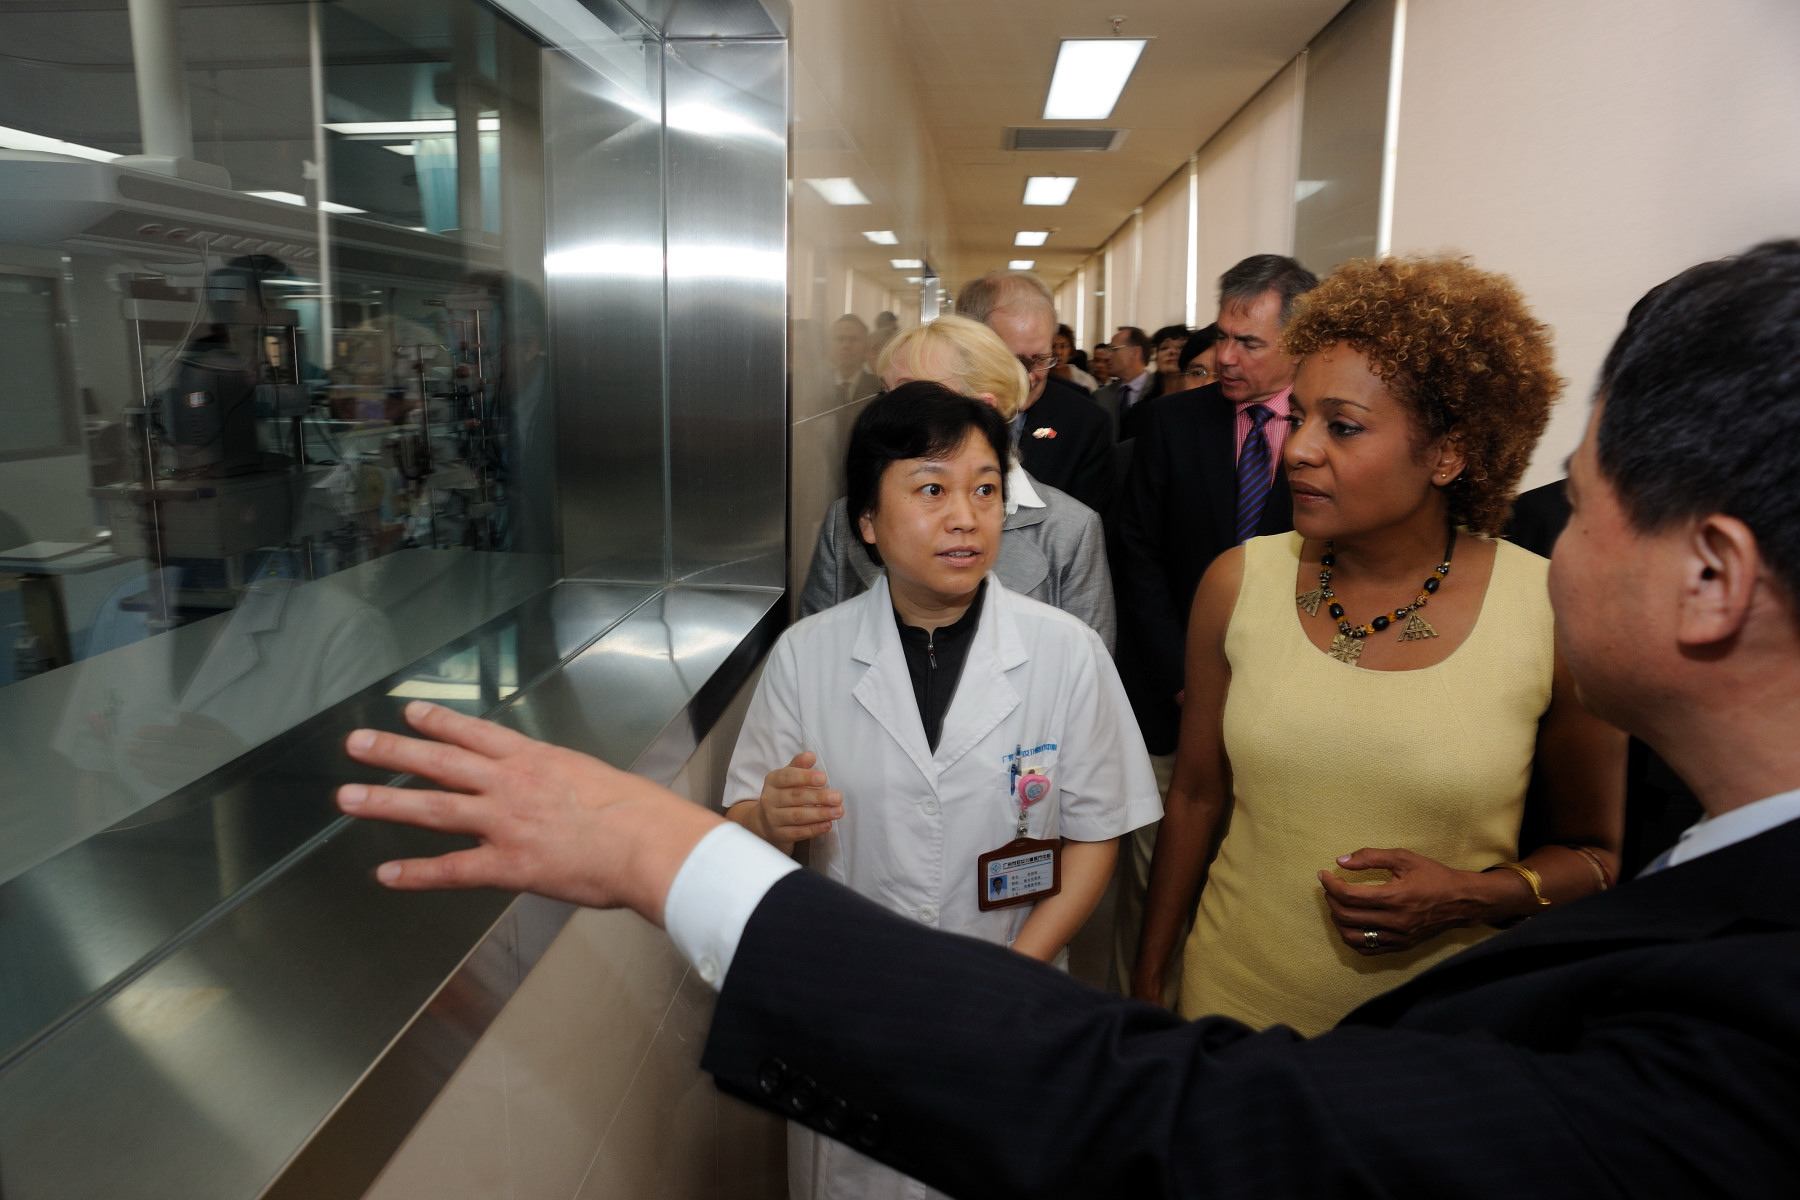 Her Excellency along with the Canadian delegation visited the ear, nose, and throat ward as well as the pediatric surgery ward of the Guangzhou Women and Children's Medical Center (GWCMC).